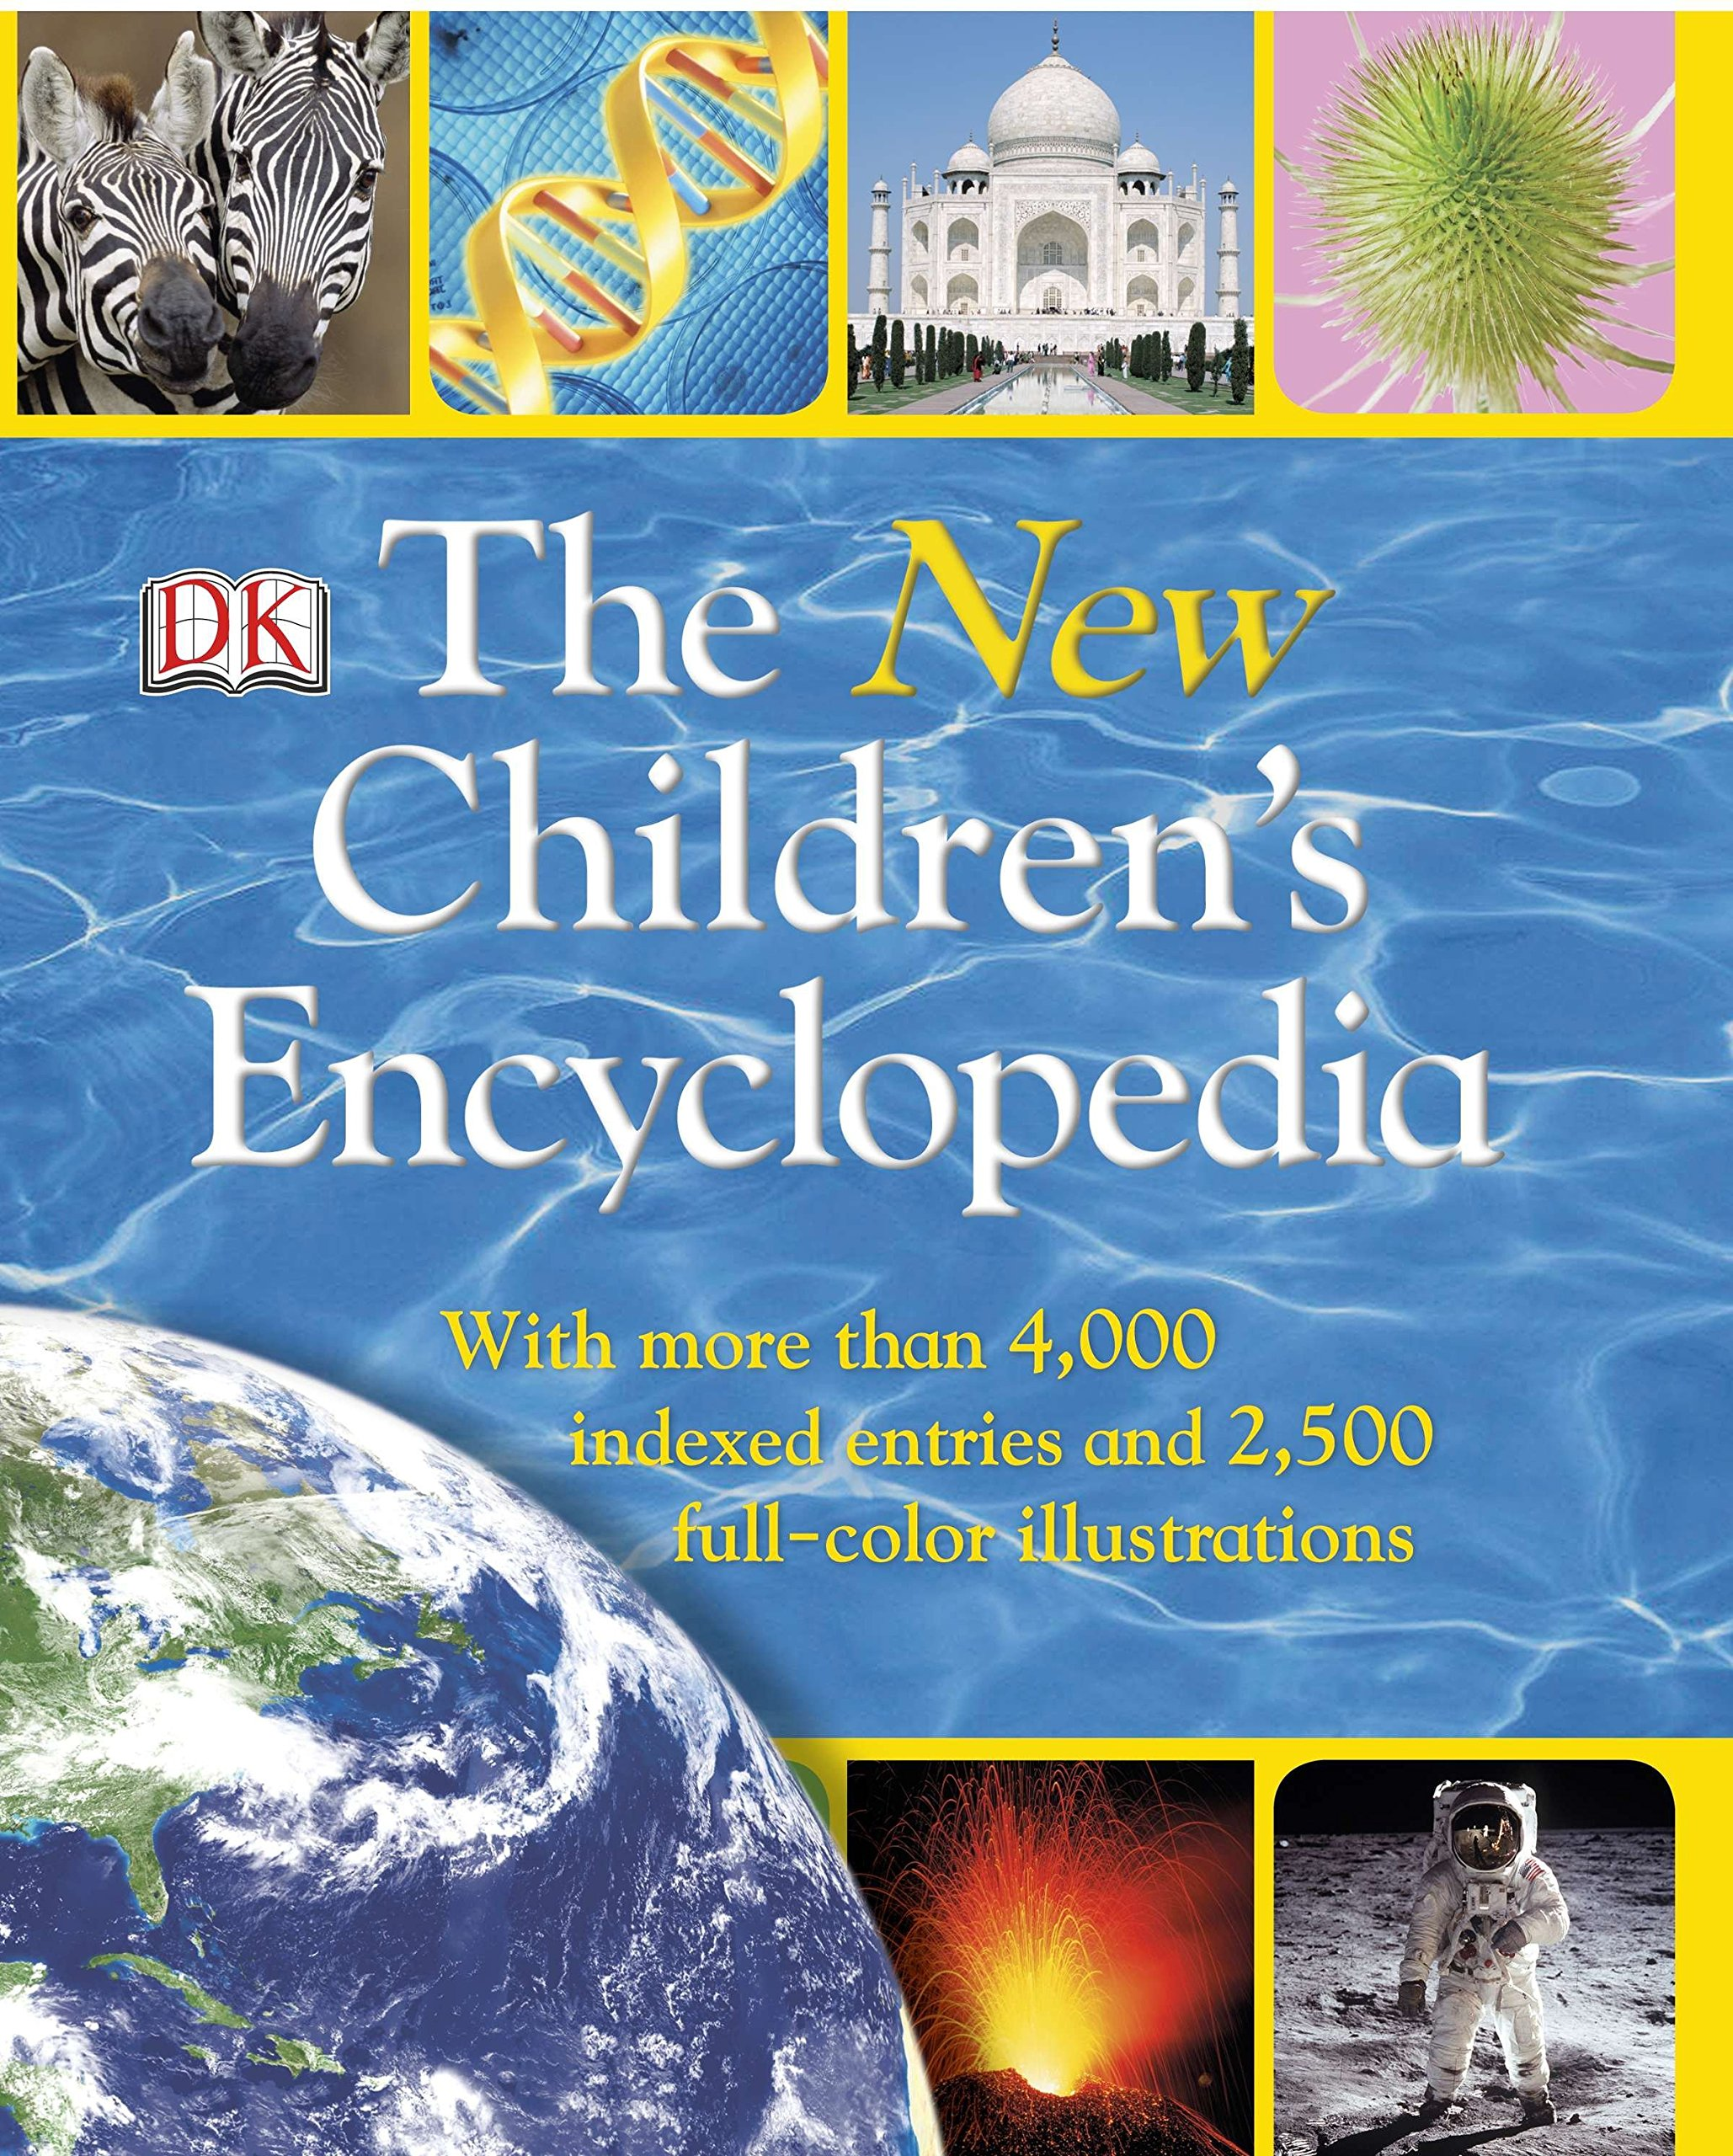 The New Children's Encyclopedia: With More Than 4,000 Indexed Entries and 2,500 Full-Color Illustrations PDF